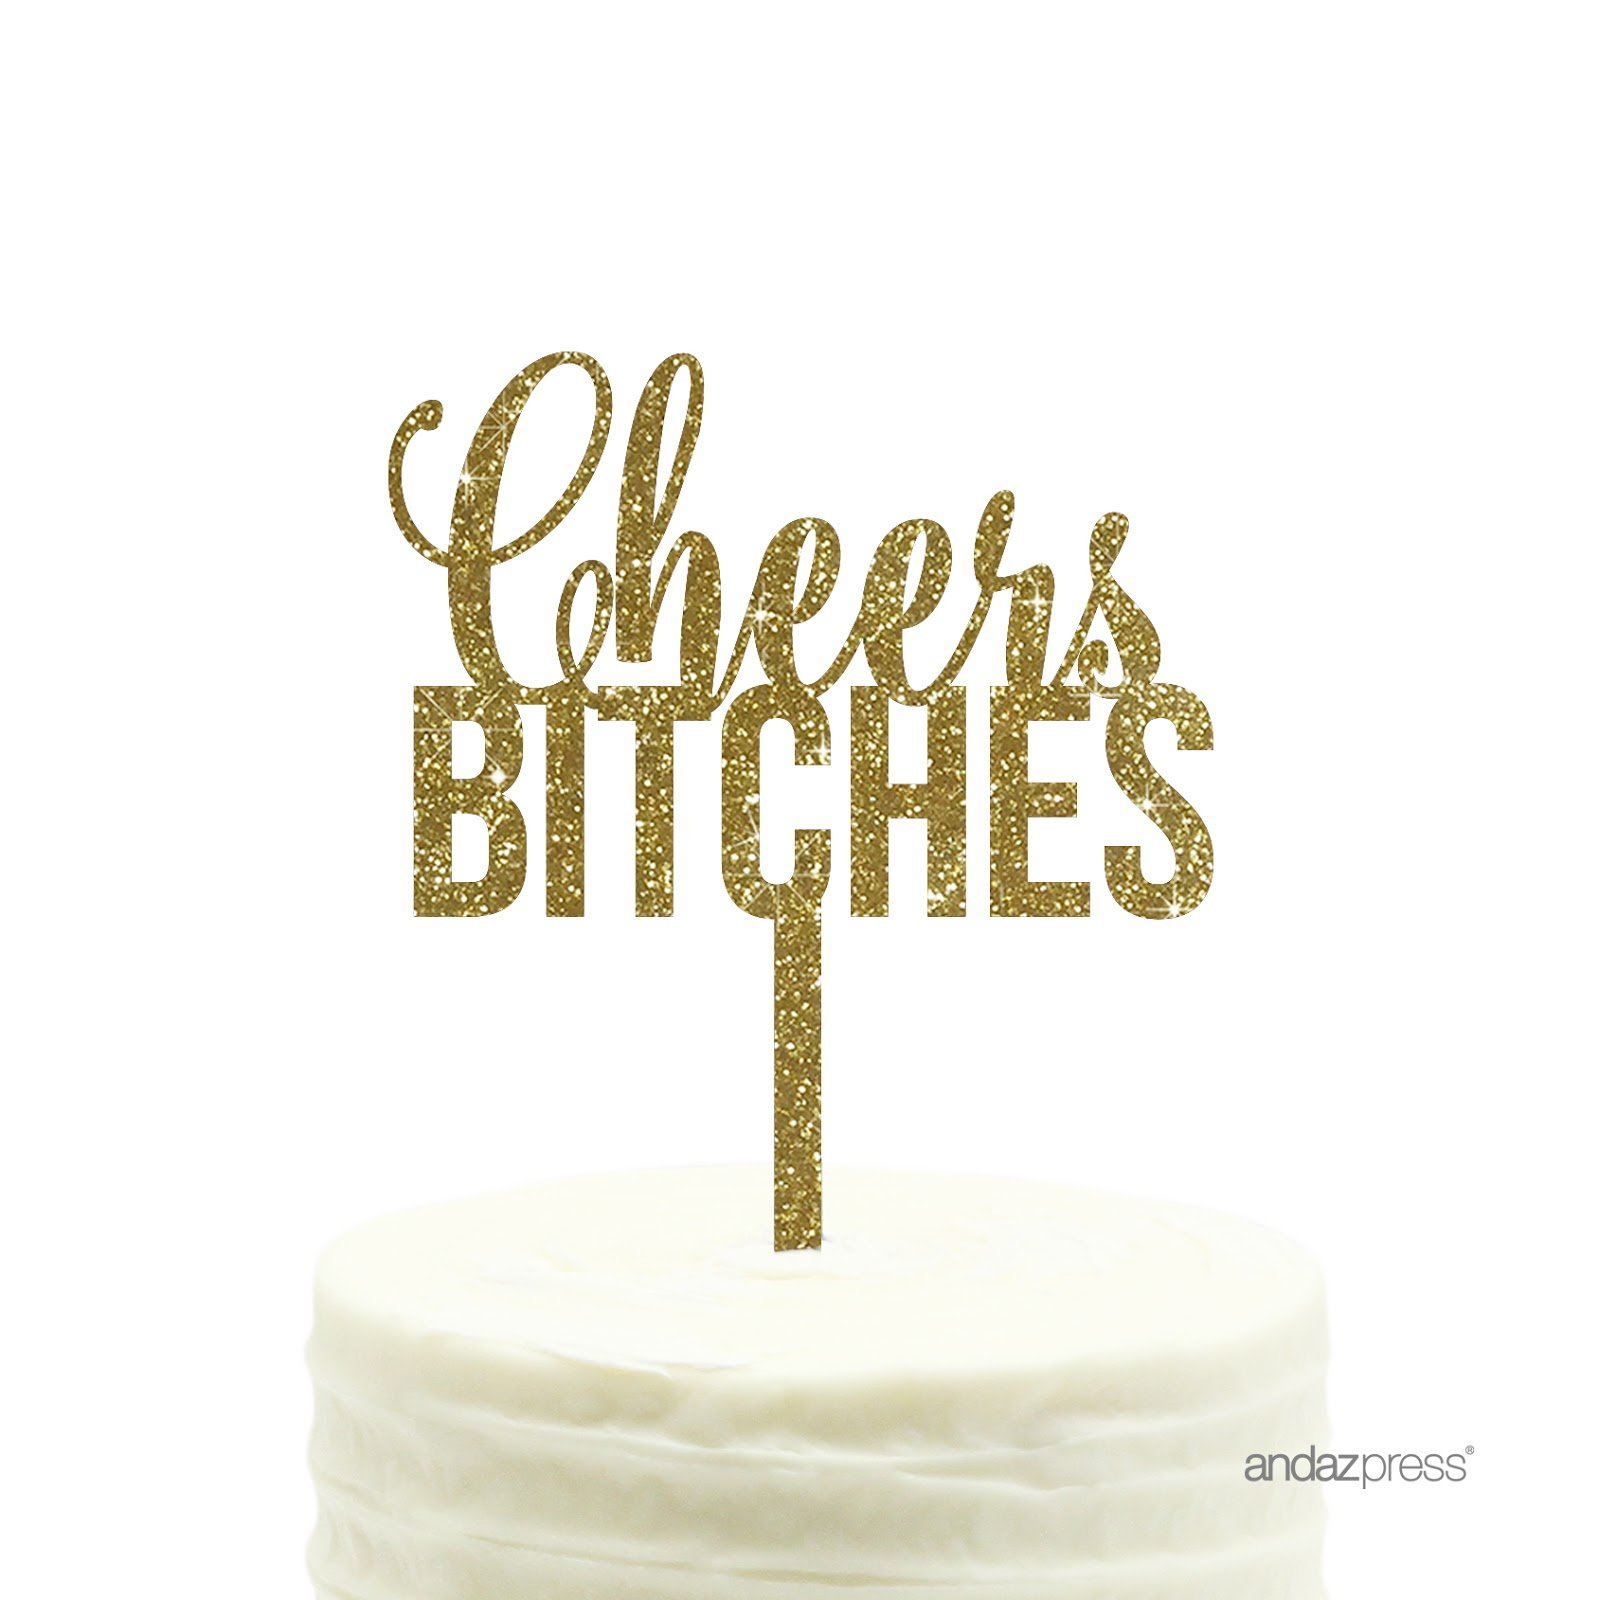 Andaz Press Party Acrylic Cake Toppers, Gold Glitter, Cheers Bitches, 1-Pack, Bachelorette Decorations